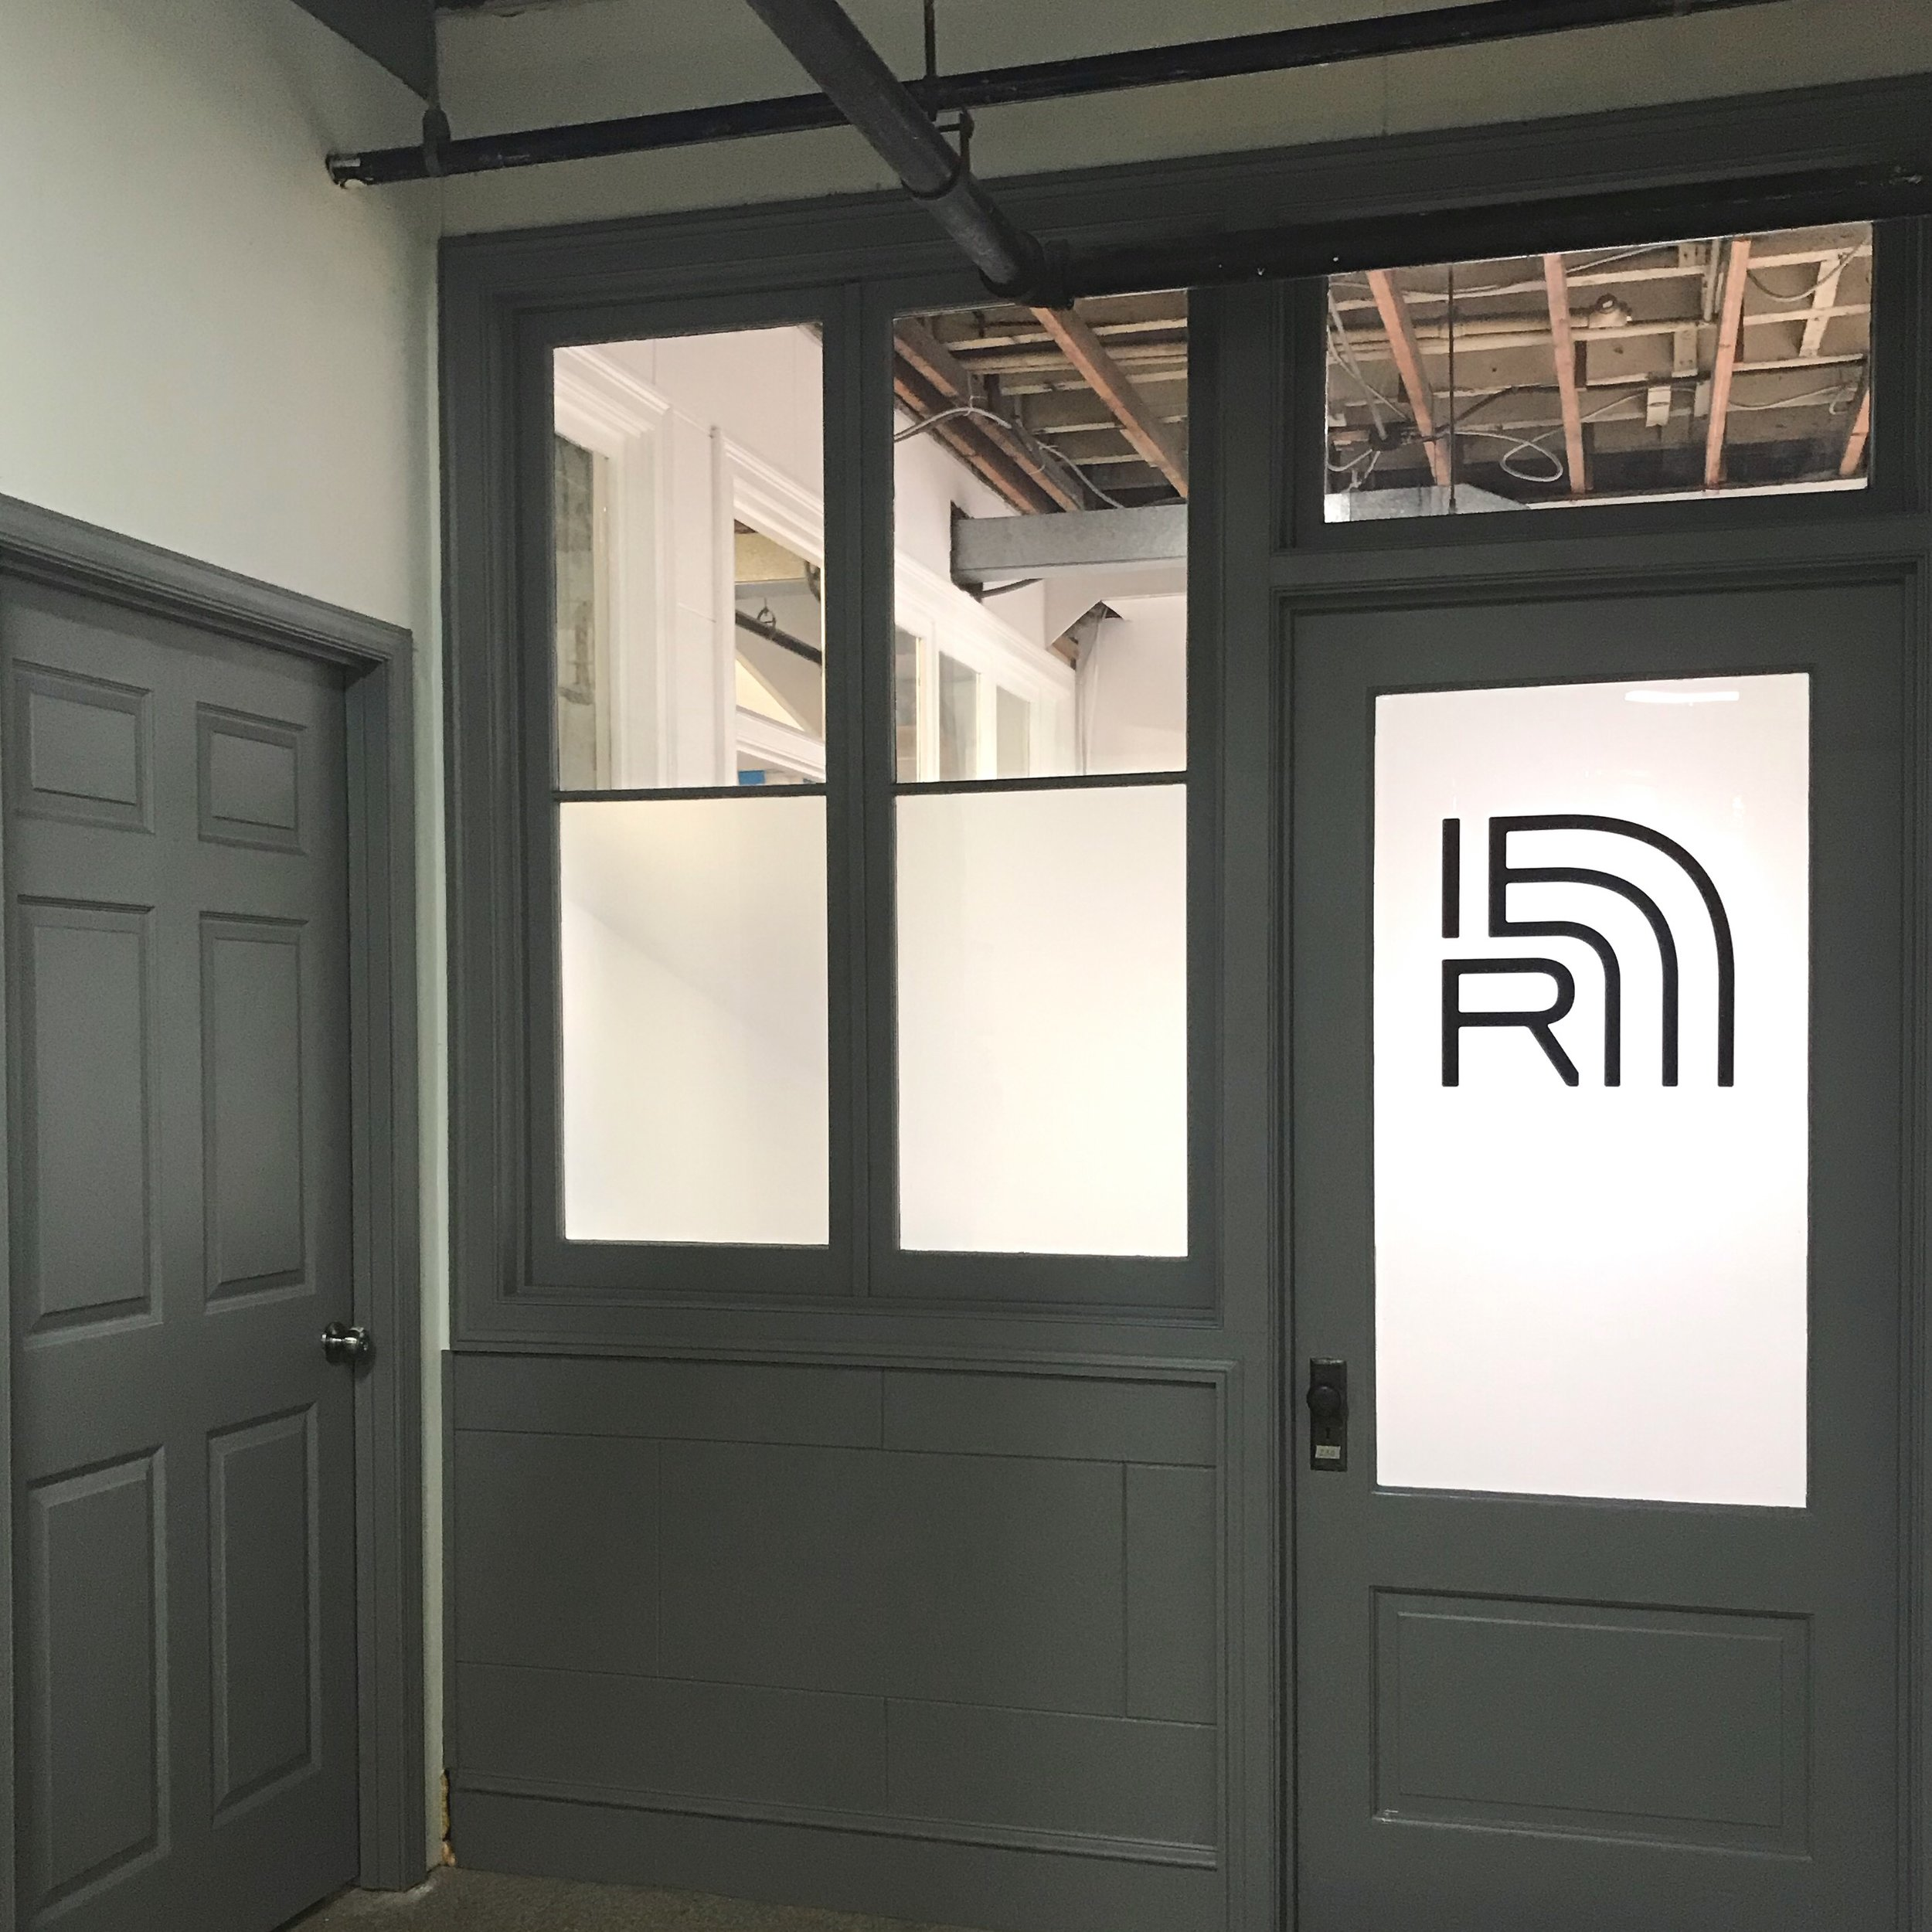 Photo of Institute for Expanded Research studio showing a gray storefront with frosted windows and the IER logo.